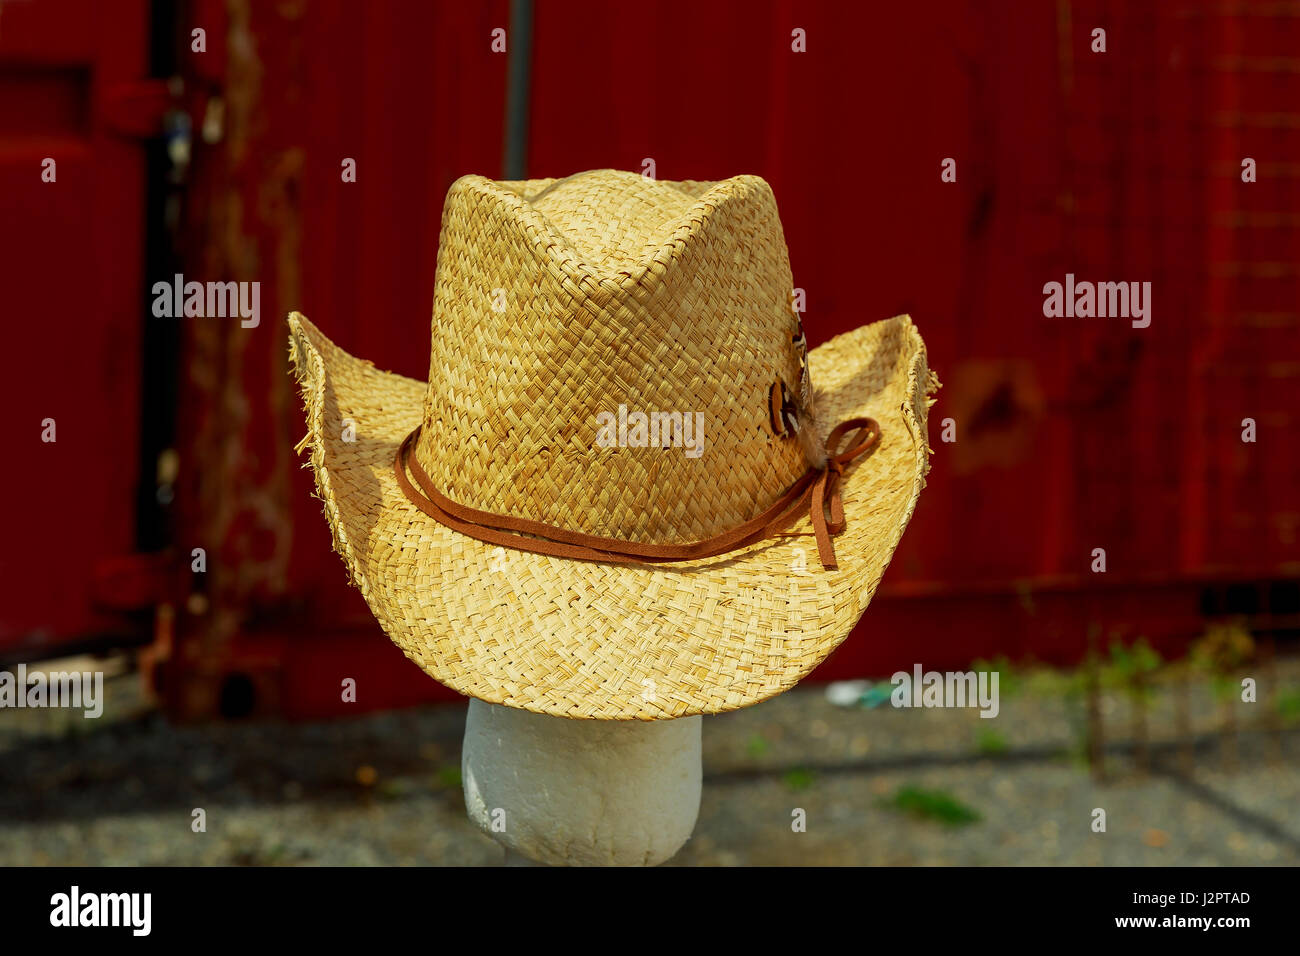 Open market stall with summer hats for men on sale. Photo in vintage style. c71e8a630d6